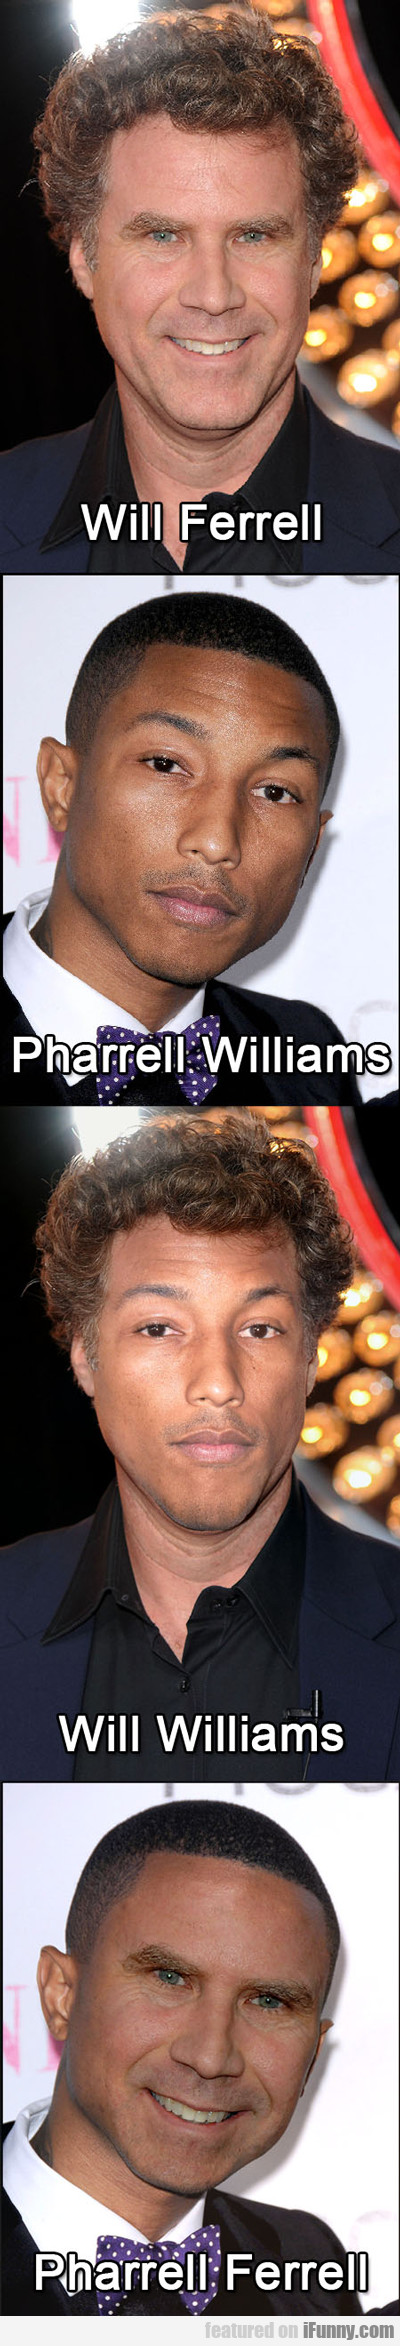 Will Ferrell, Pharell Williams, Will Williams...